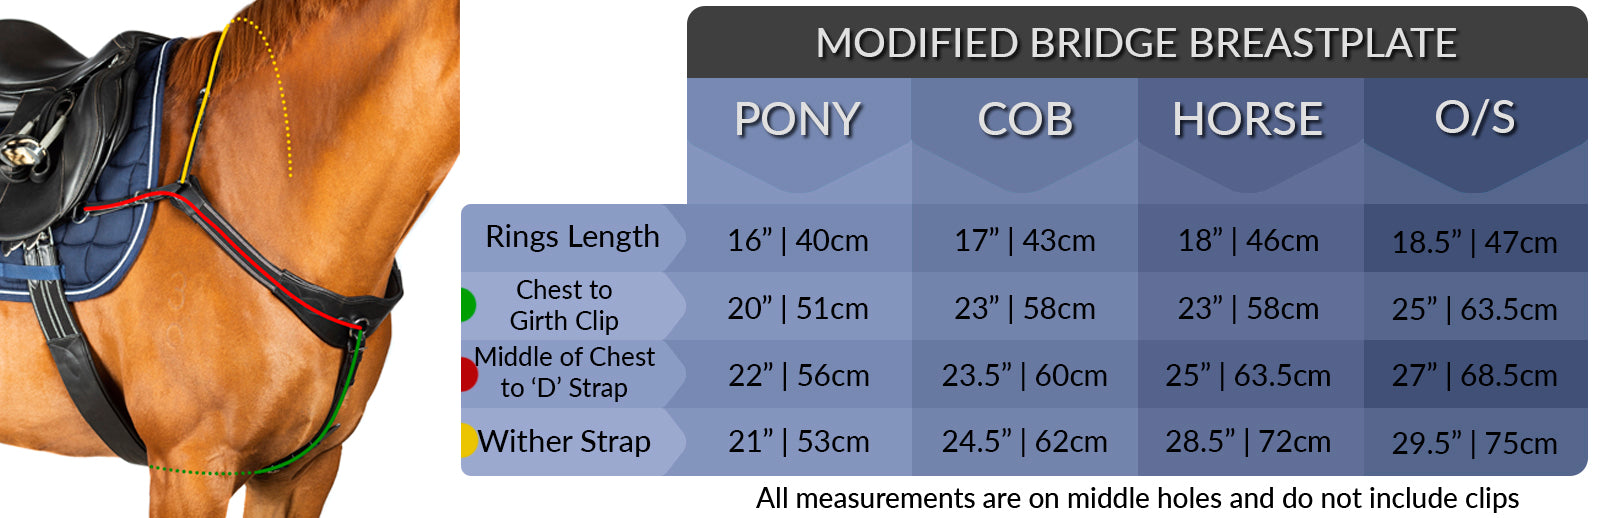 modified bridge measuring chart